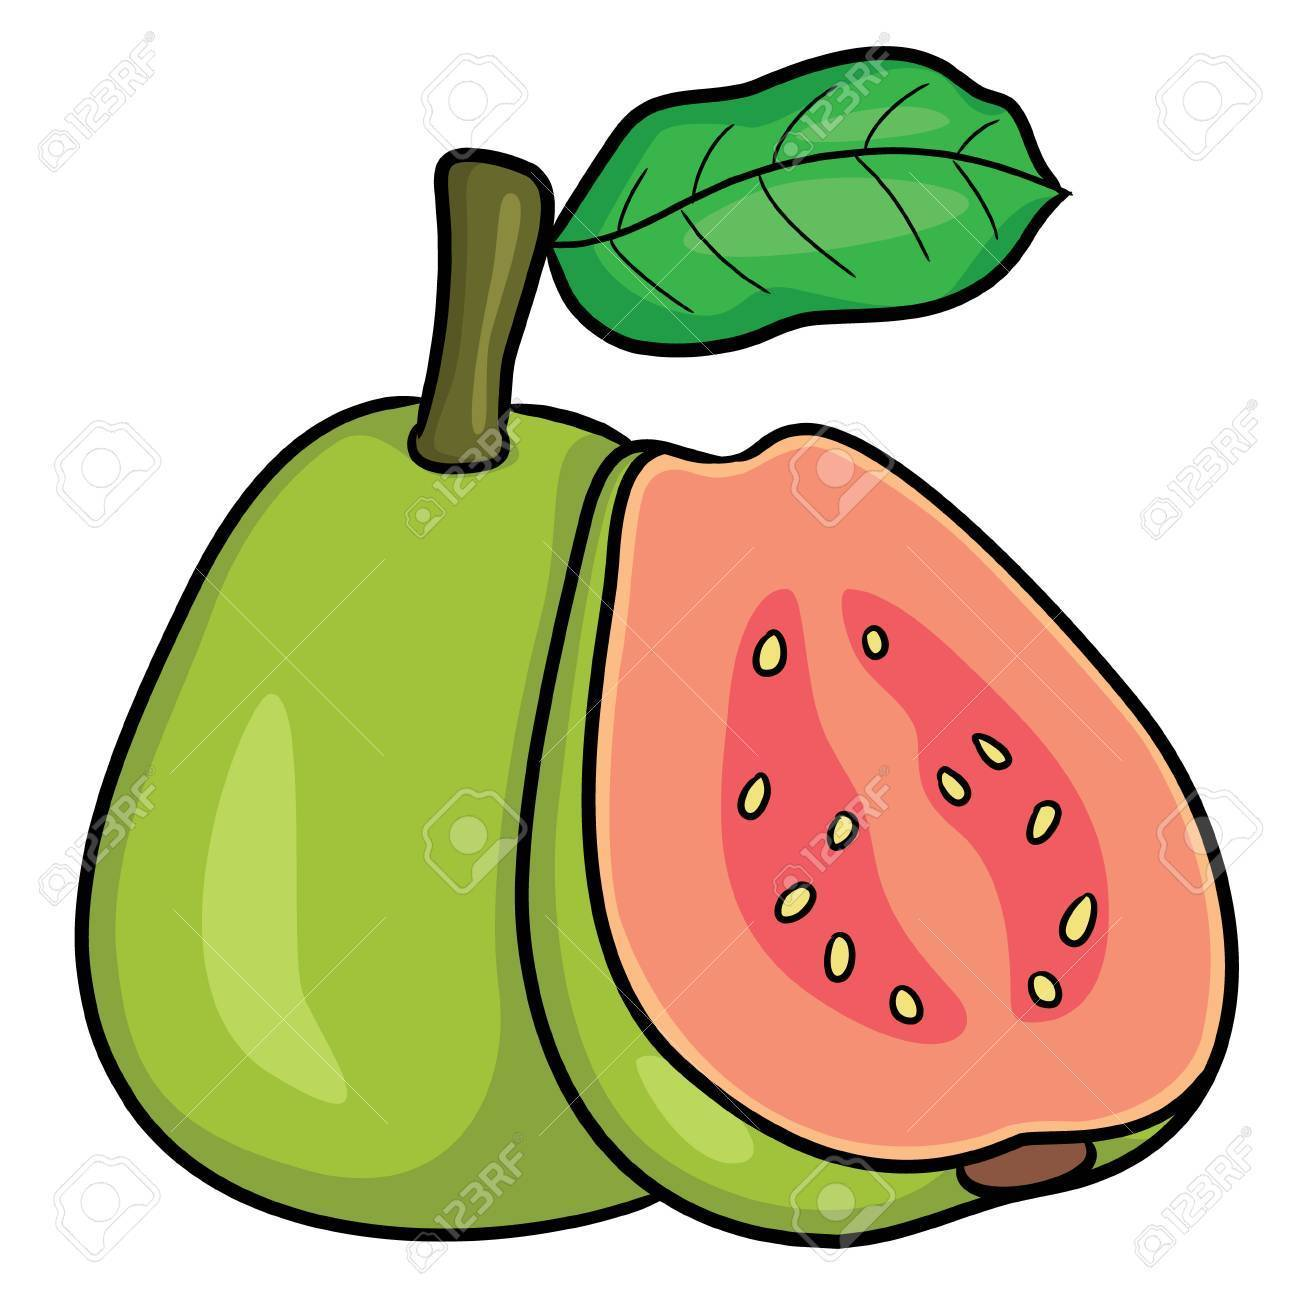 Guava images clipart jpg royalty free Guava clipart images 6 » Clipart Portal jpg royalty free